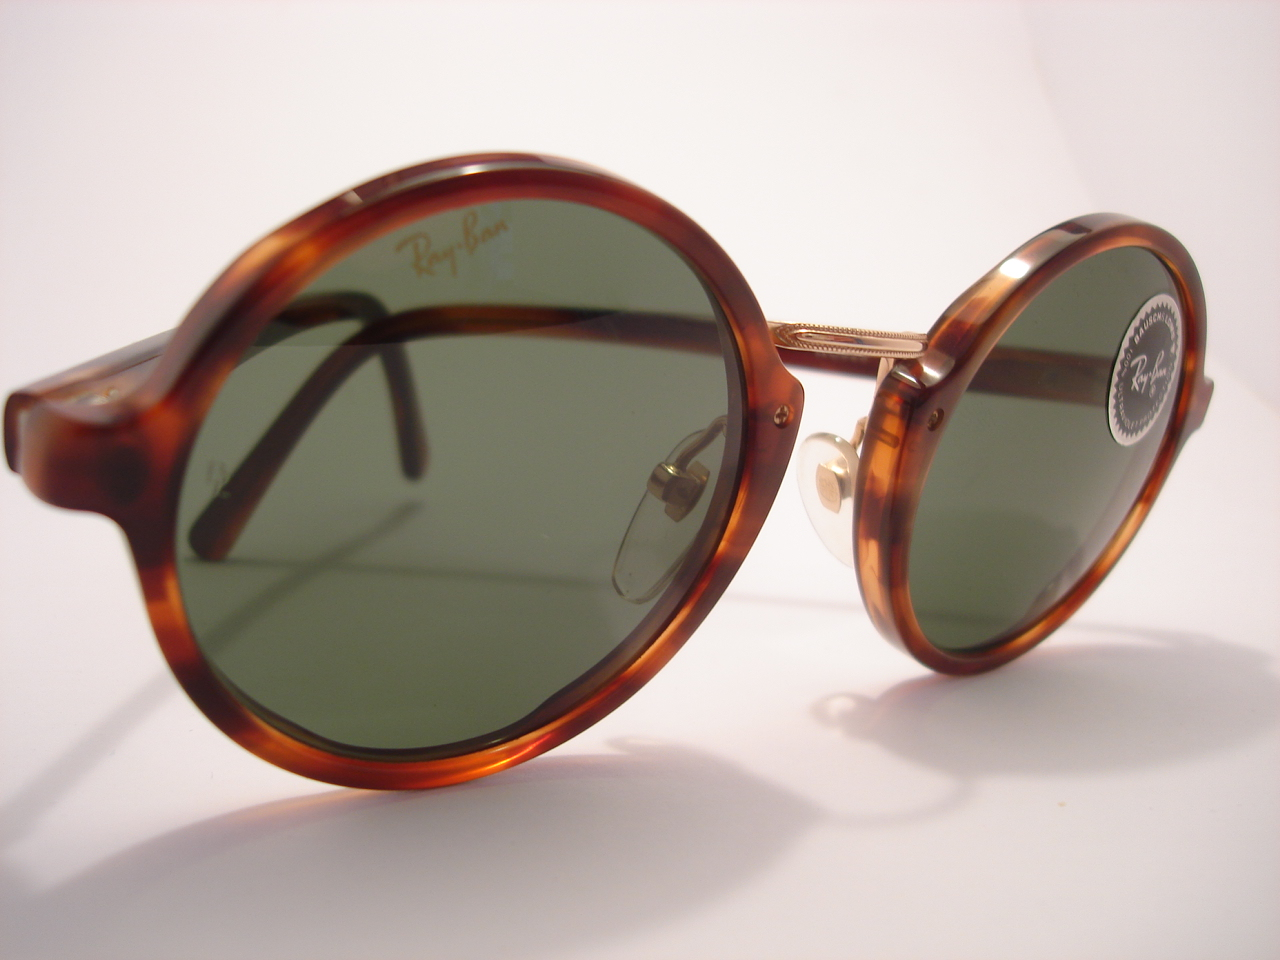 Eyewear Frames Made In Usa : theothersideofthepillow: vintage RAY BAN by BAUSCH & LOMB ...